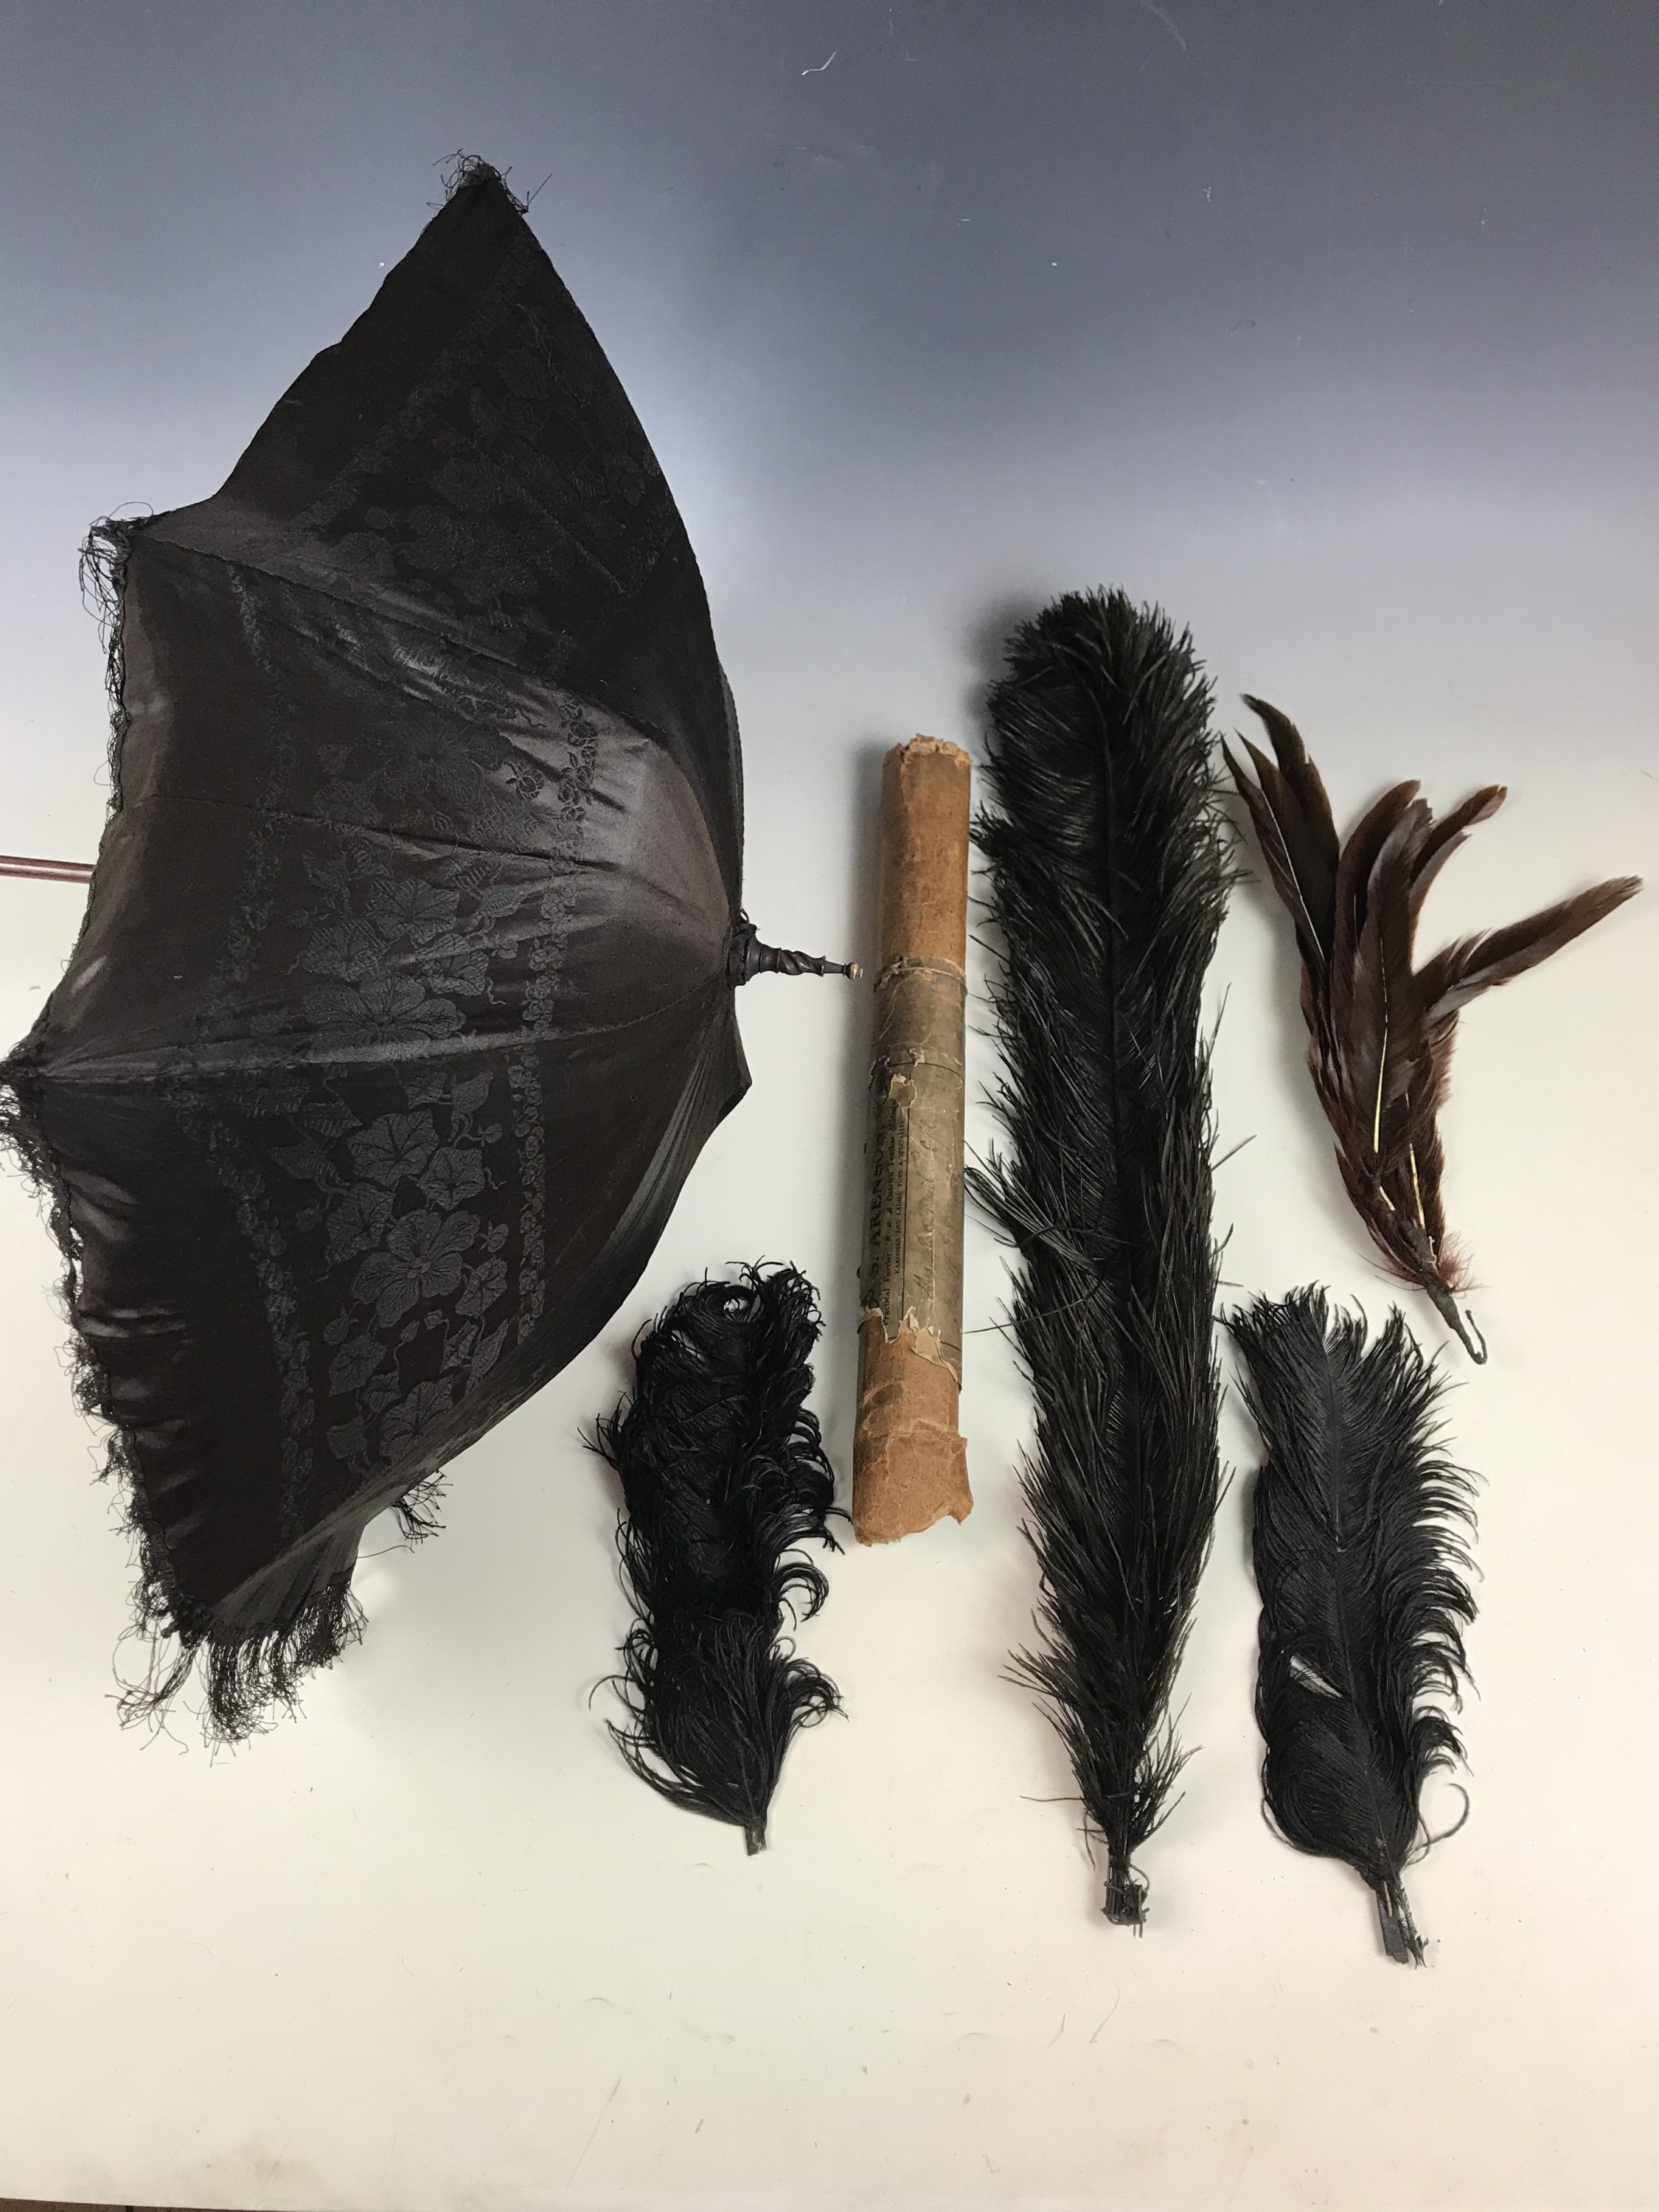 Lot 36 - A late Victorian carriage parasol of black silk damask, with turned wooden handle, together with